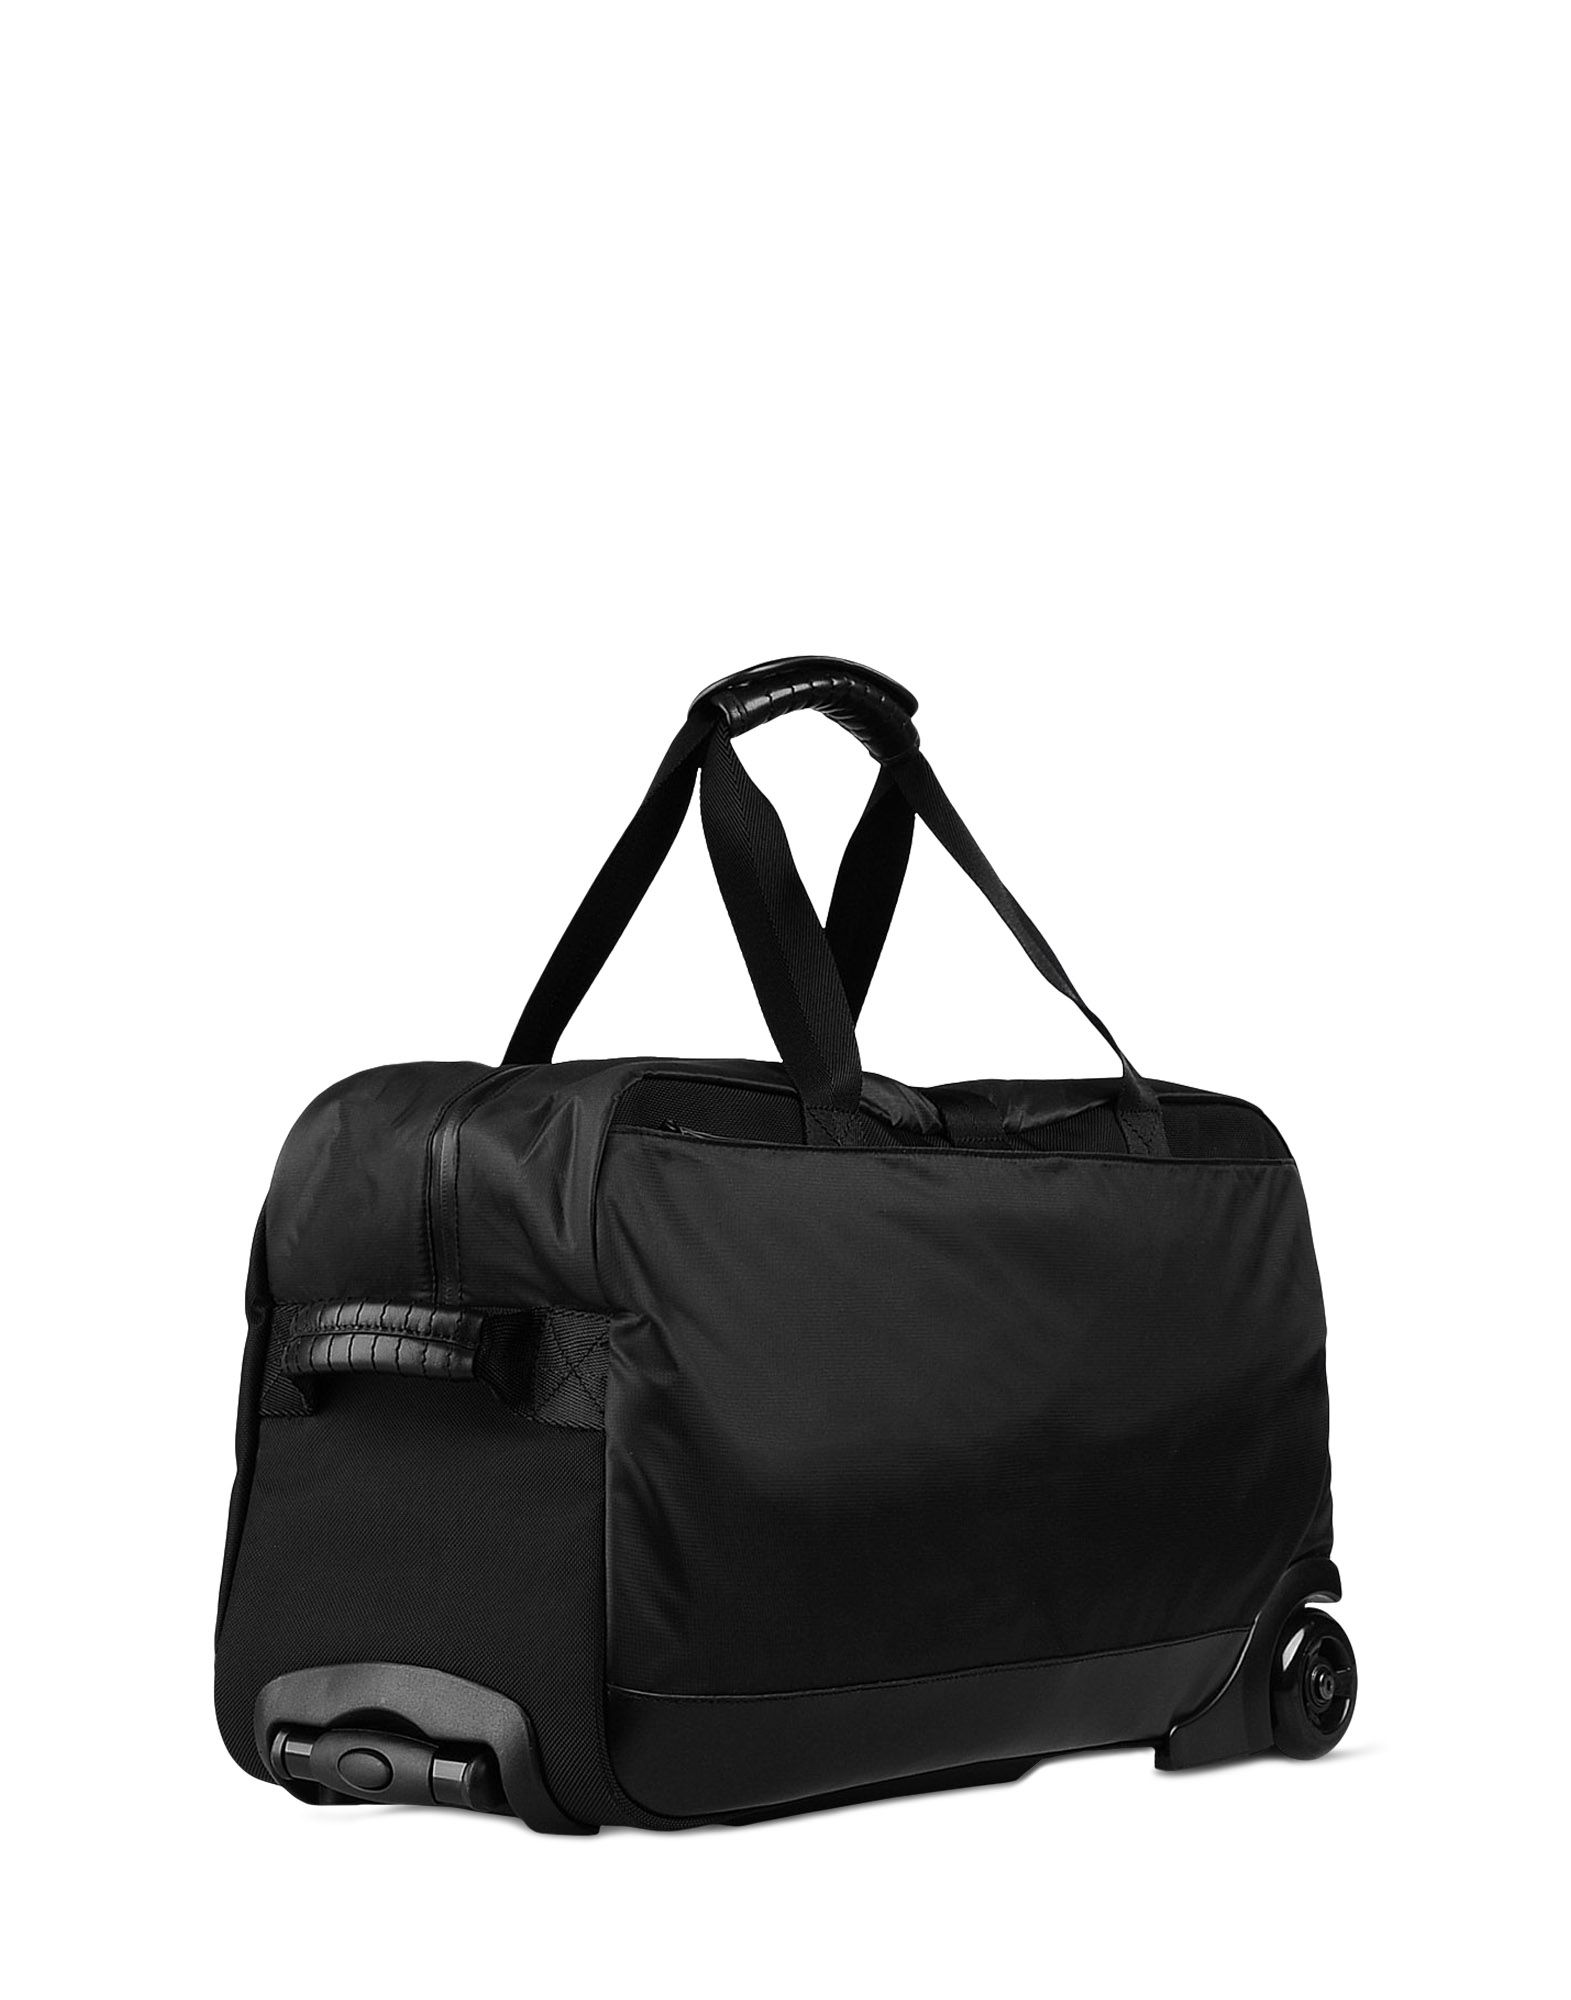 Y 3 mobility cabin bag for women adidas y 3 official store for Cabin bag backpack